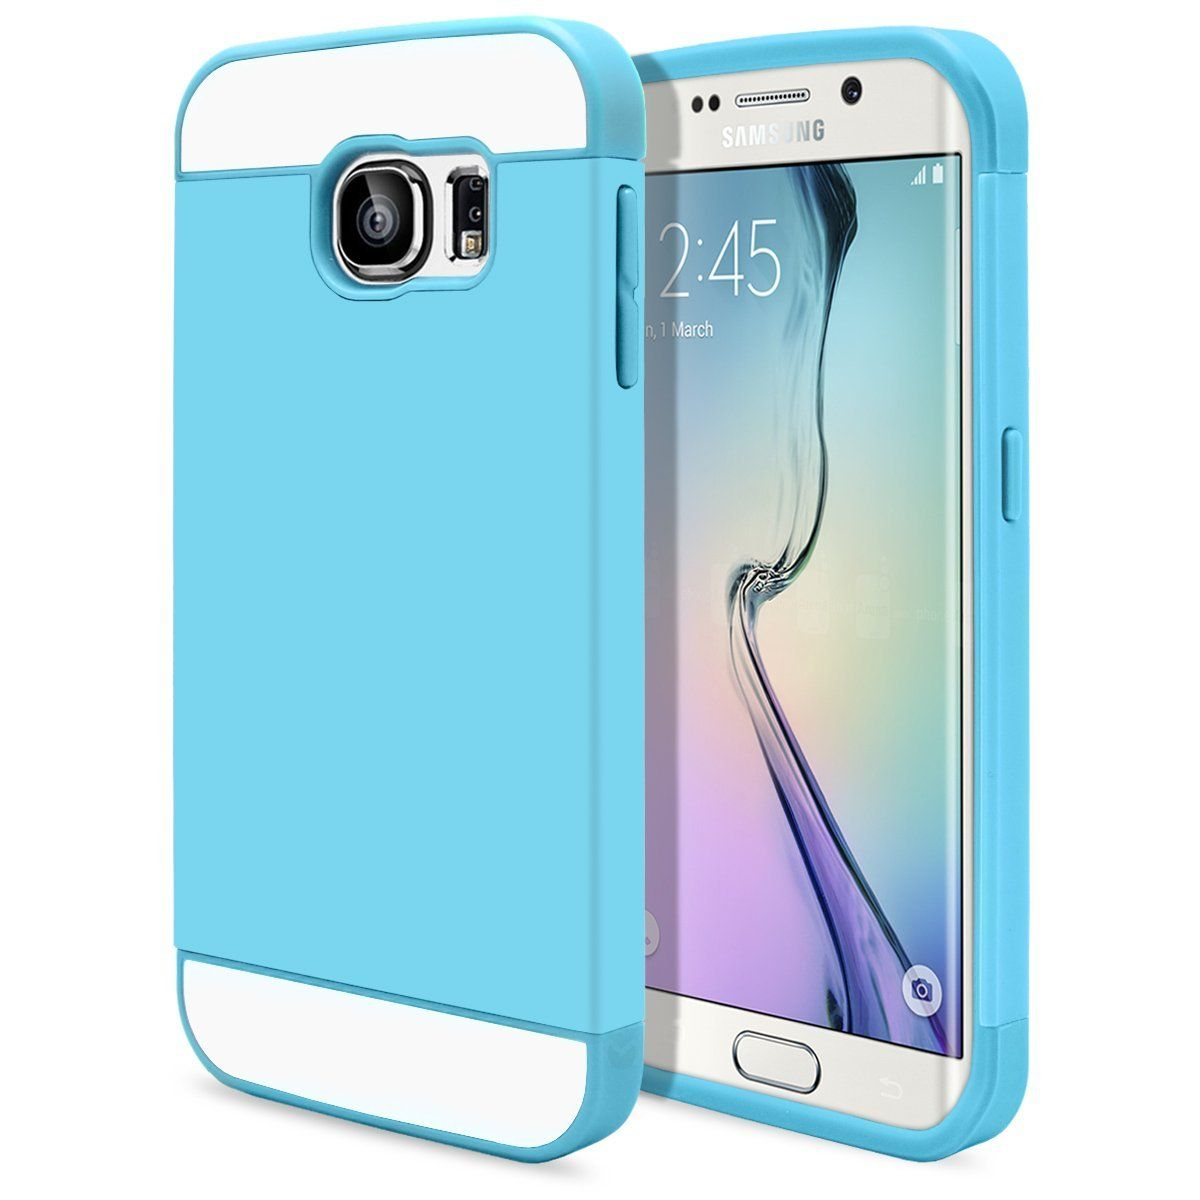 Galaxy S6 Edge Case Cute Ultra Slim Protective [Hybrid Impact] Hard Durable Thin TPU Cover for Samsung Galaxy S6 Edge Armor Shell [ Baby Blue - Blue] Case with Clear Screen Protector   MaagicMobile